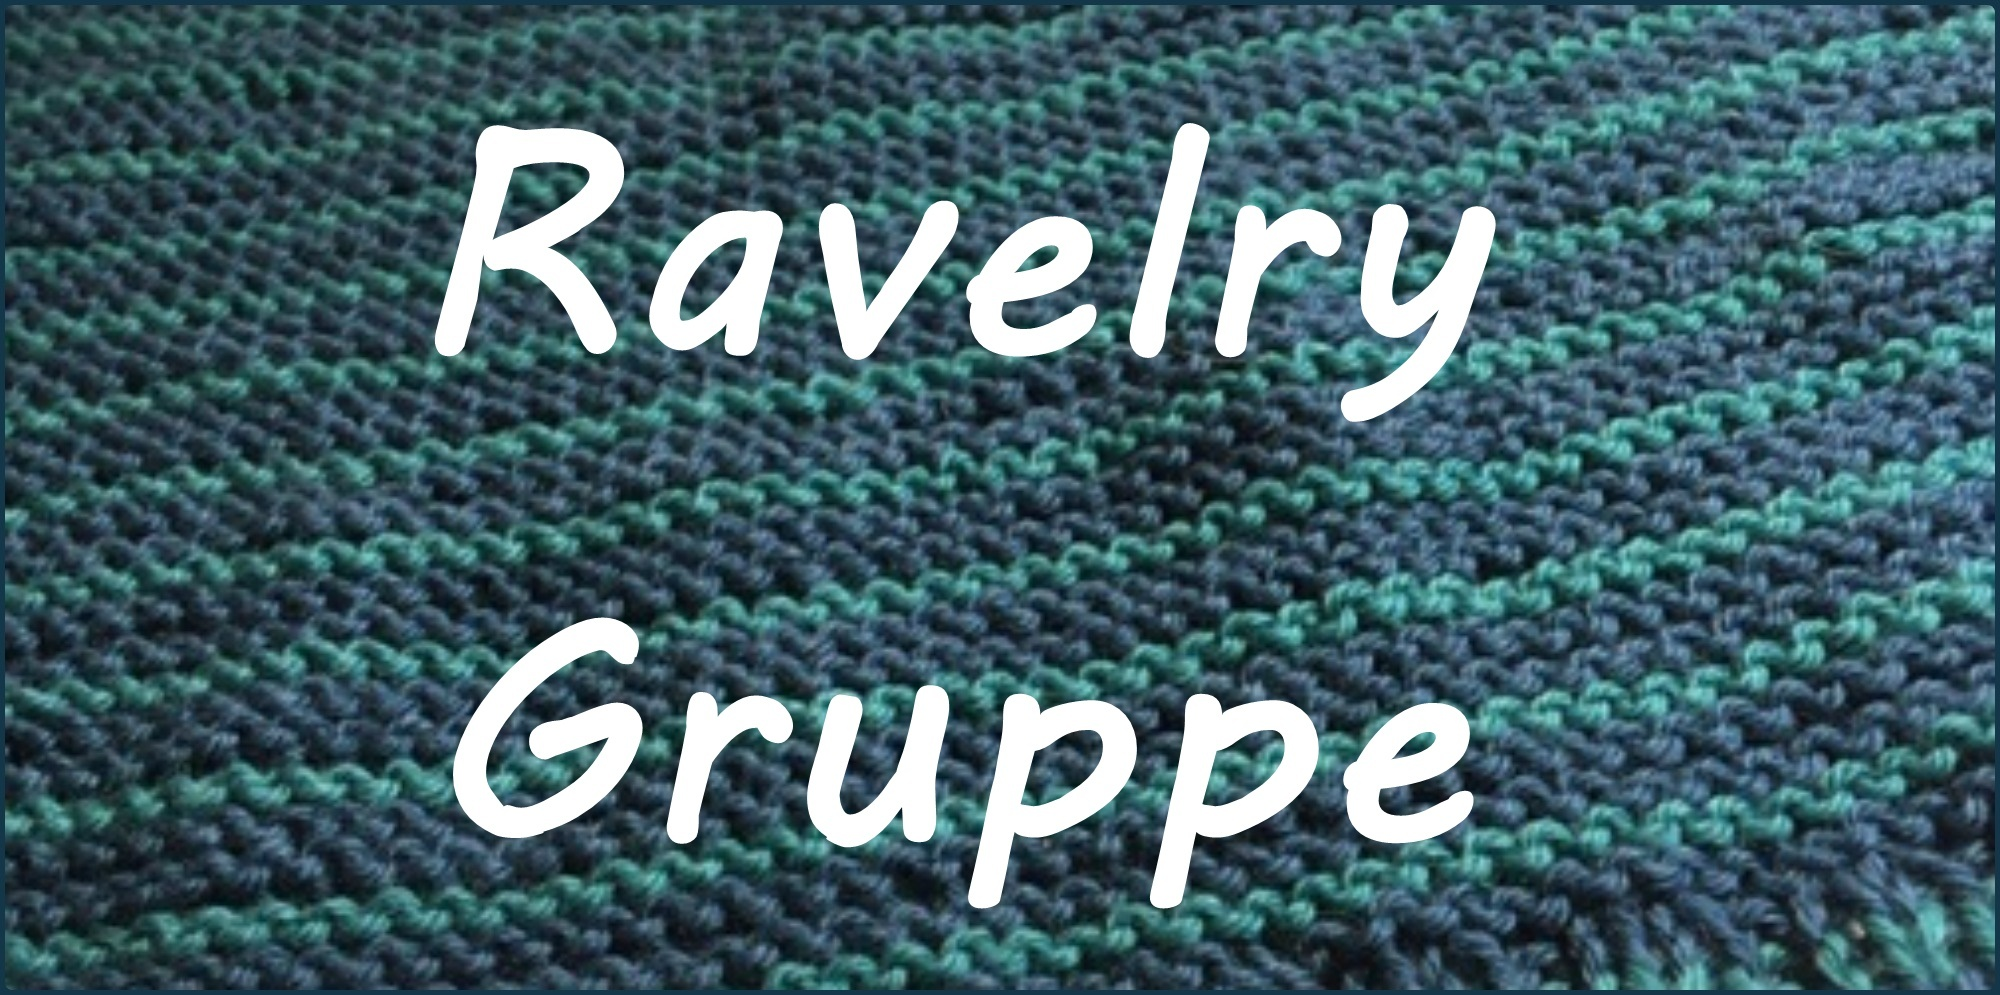 ravelry_gruppe